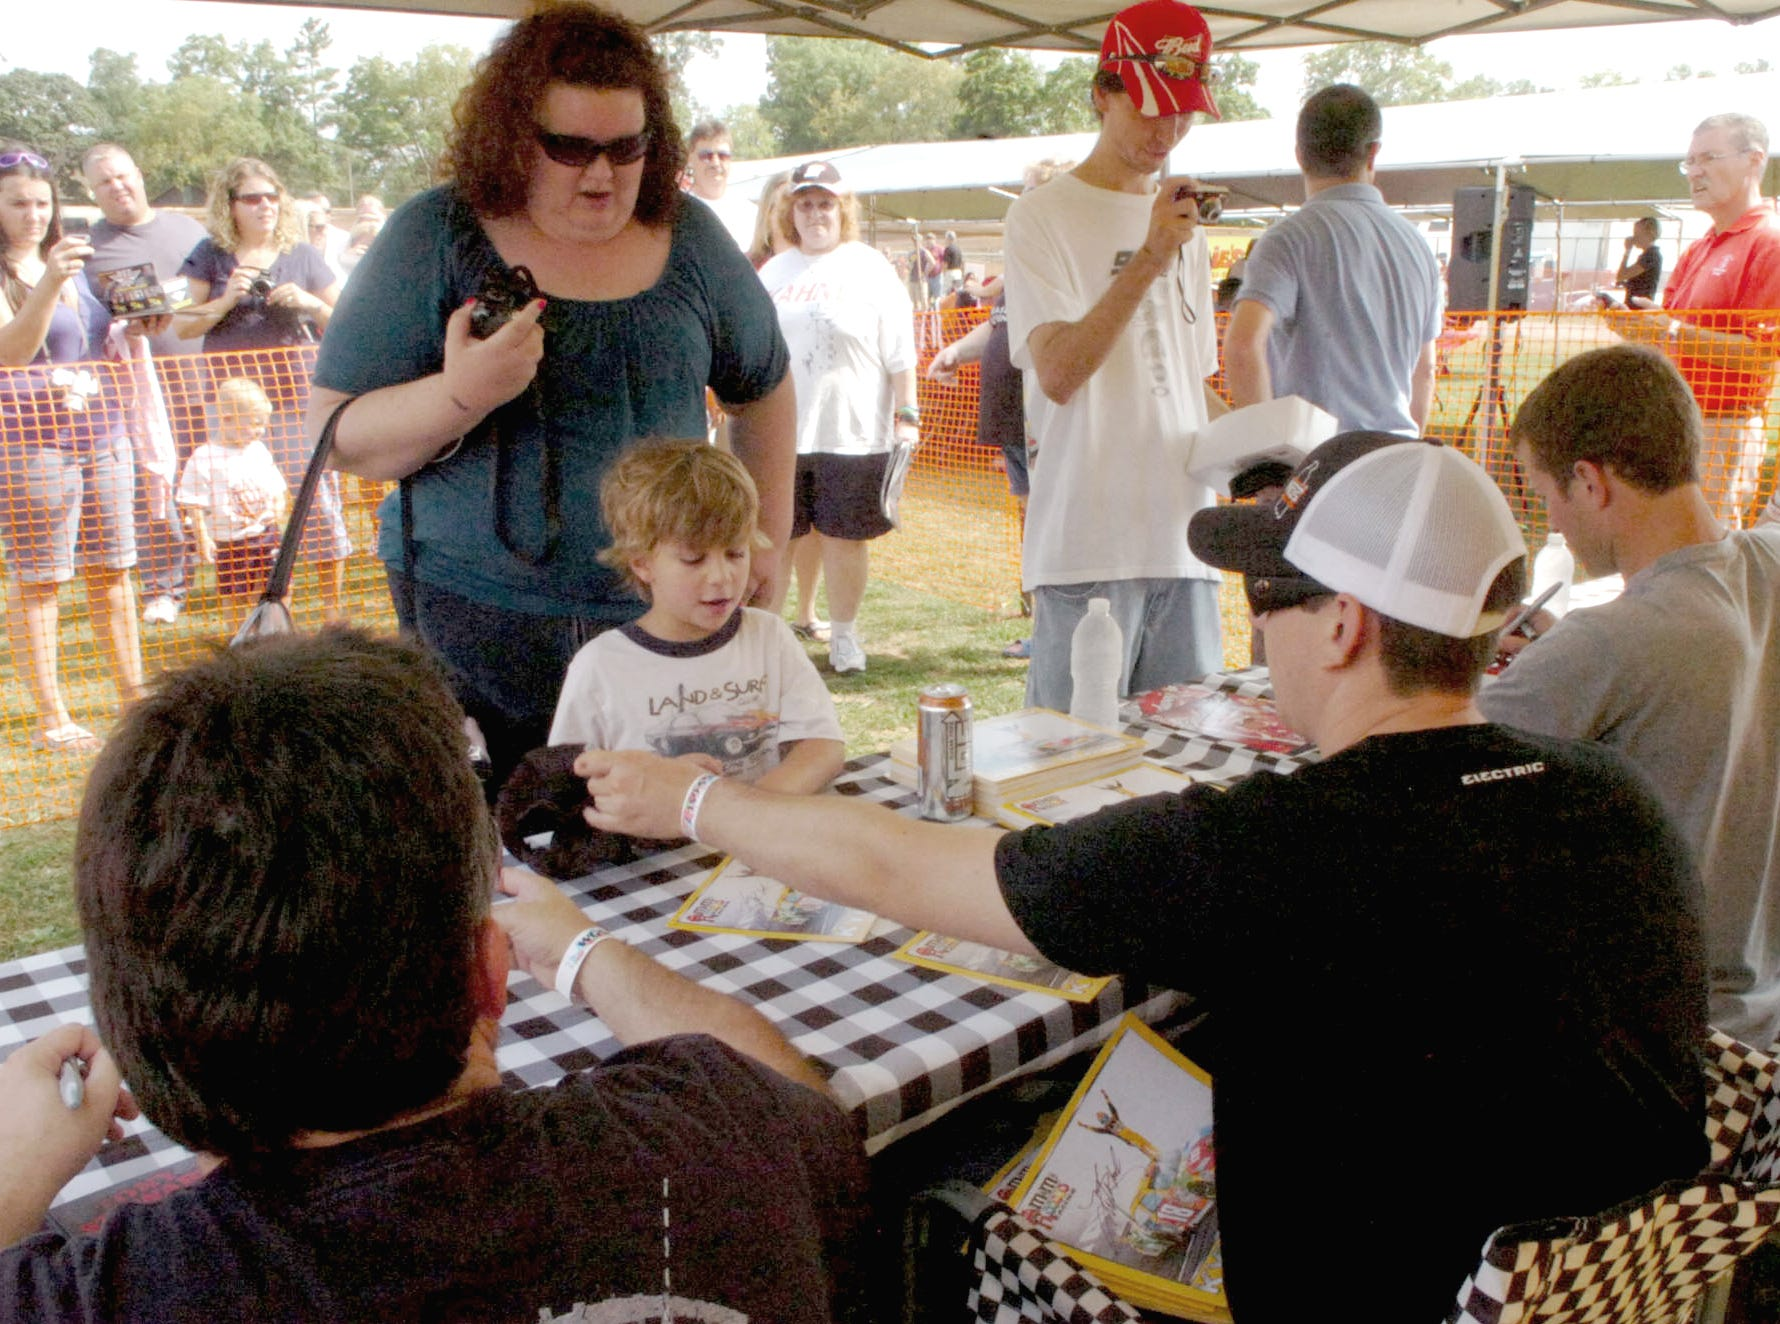 Fans stood in line in the sunny heat to get autographs of not only Kasey Kahne but Tony Stewart and Kyle Busch in 2010.